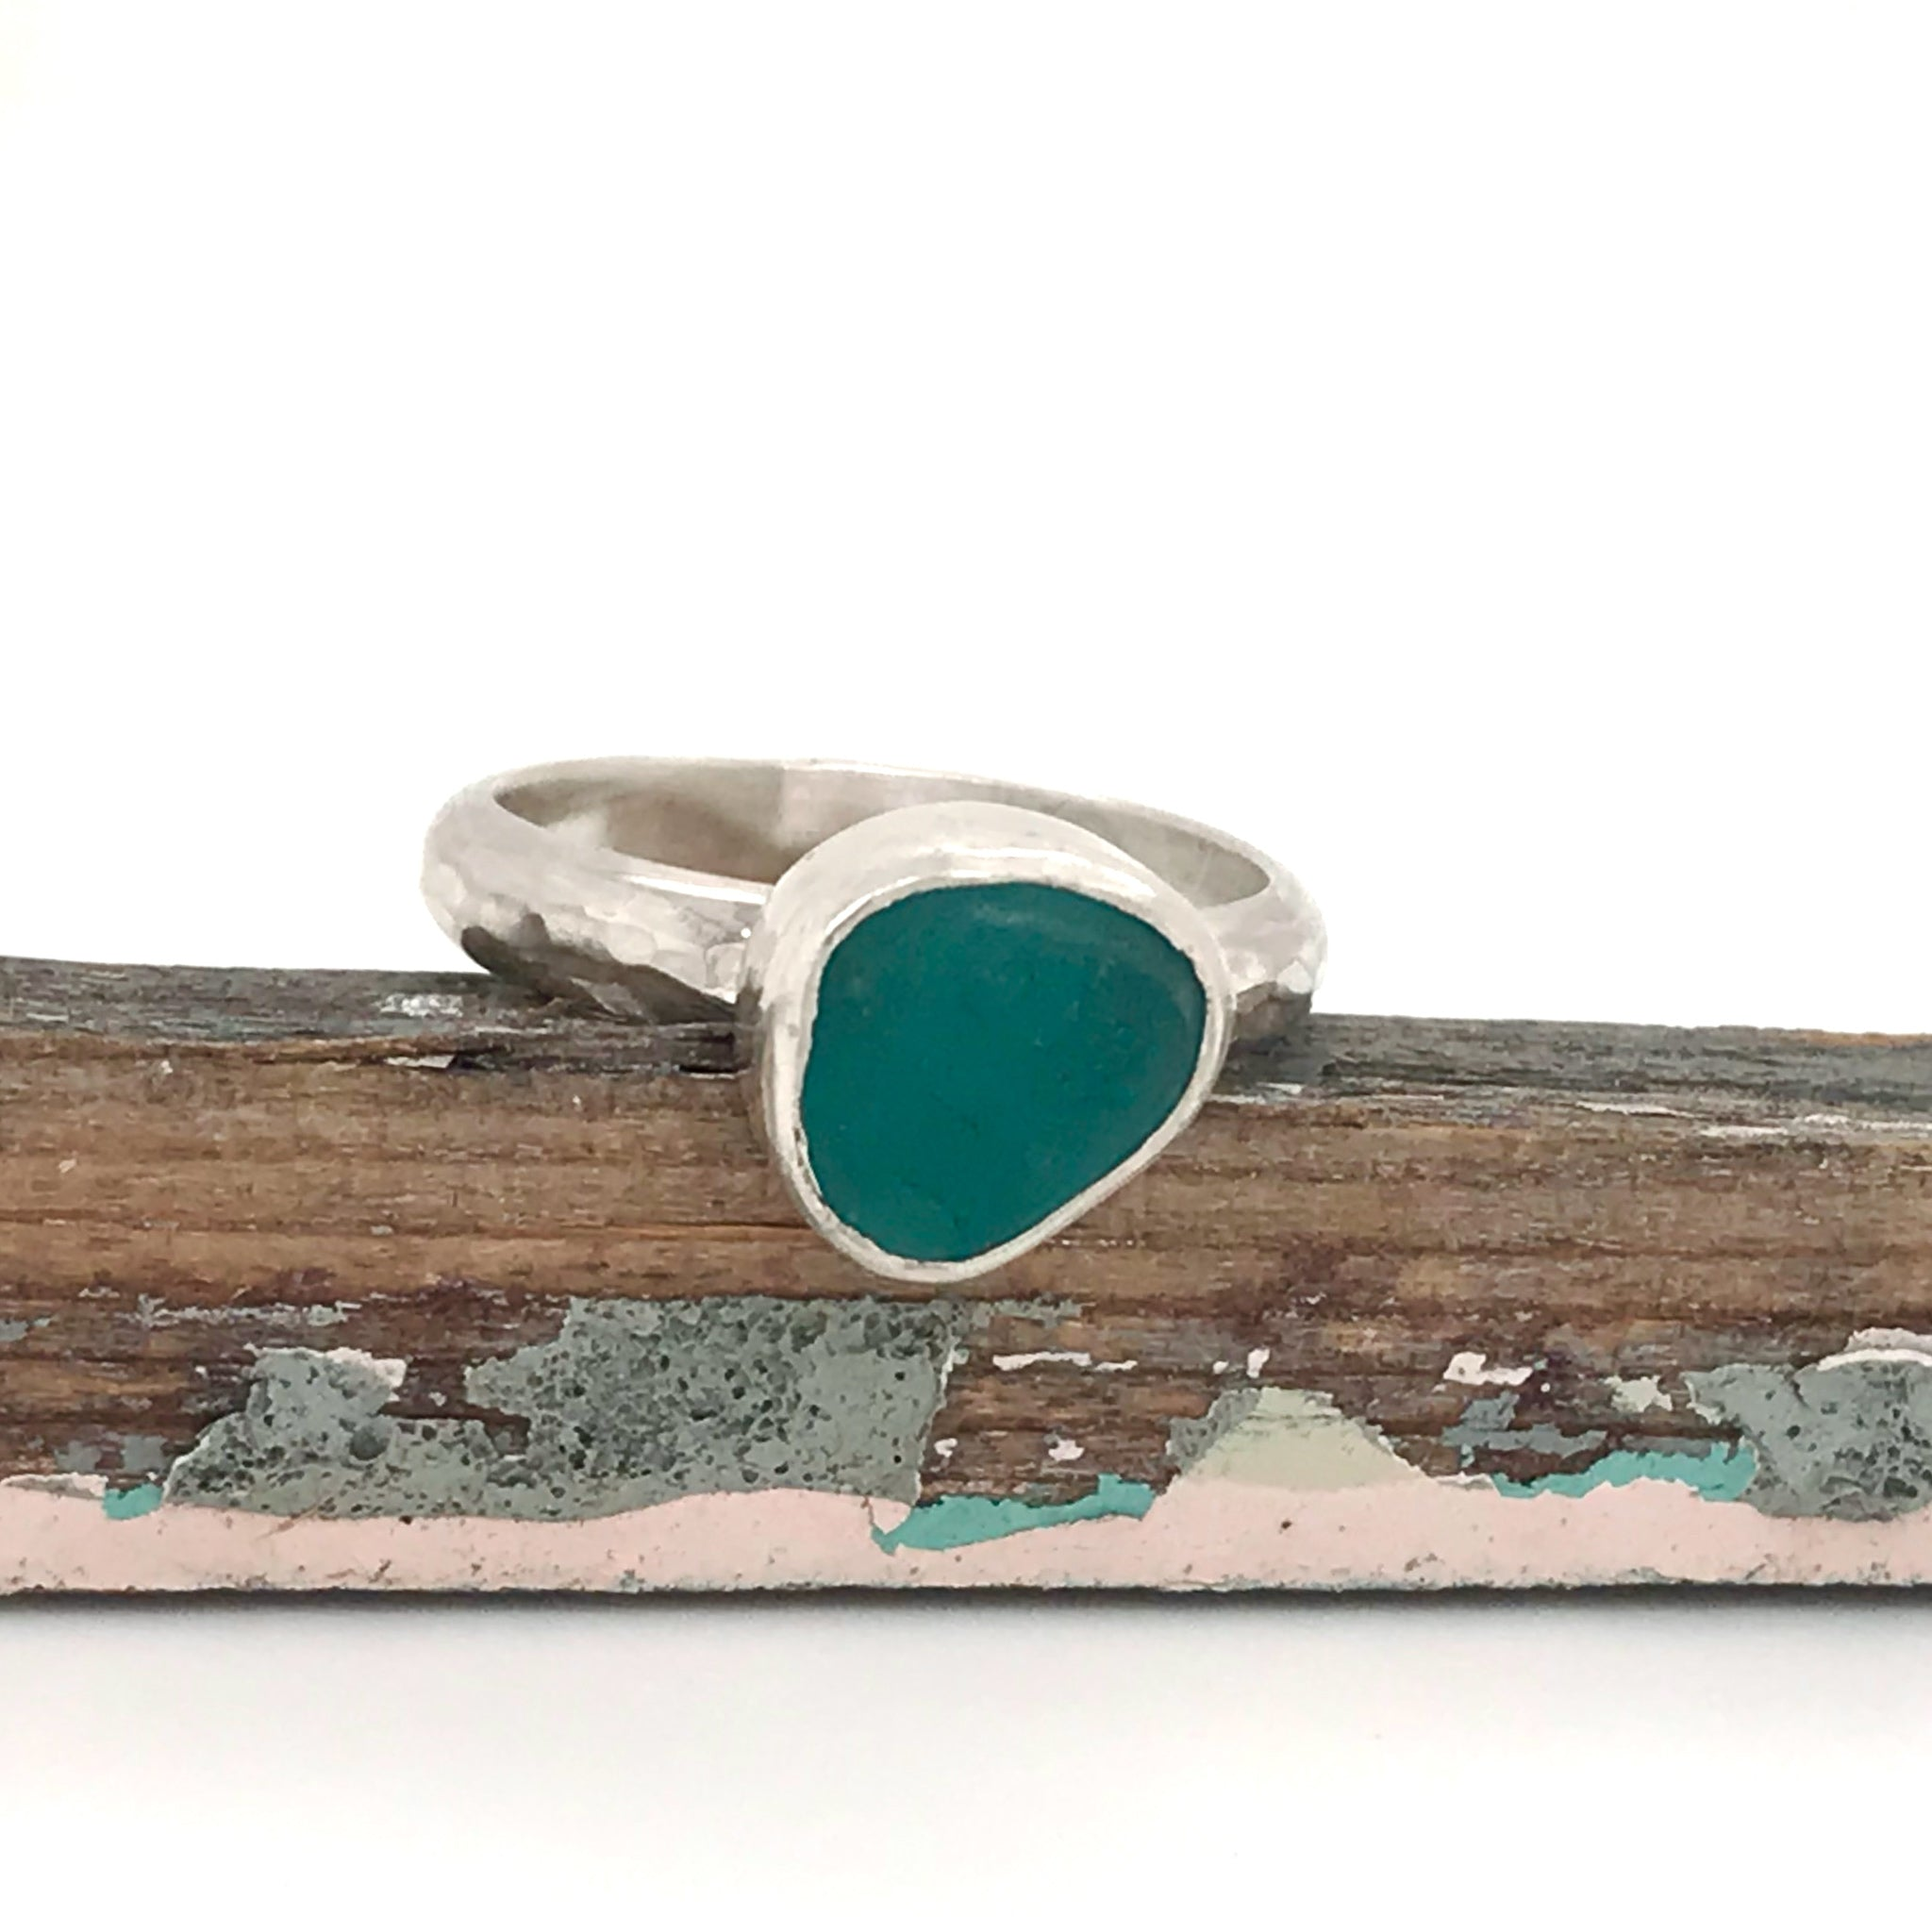 Small Teal Seaglass Ring – Sterling Silver Shank and Bezel – Made to Order